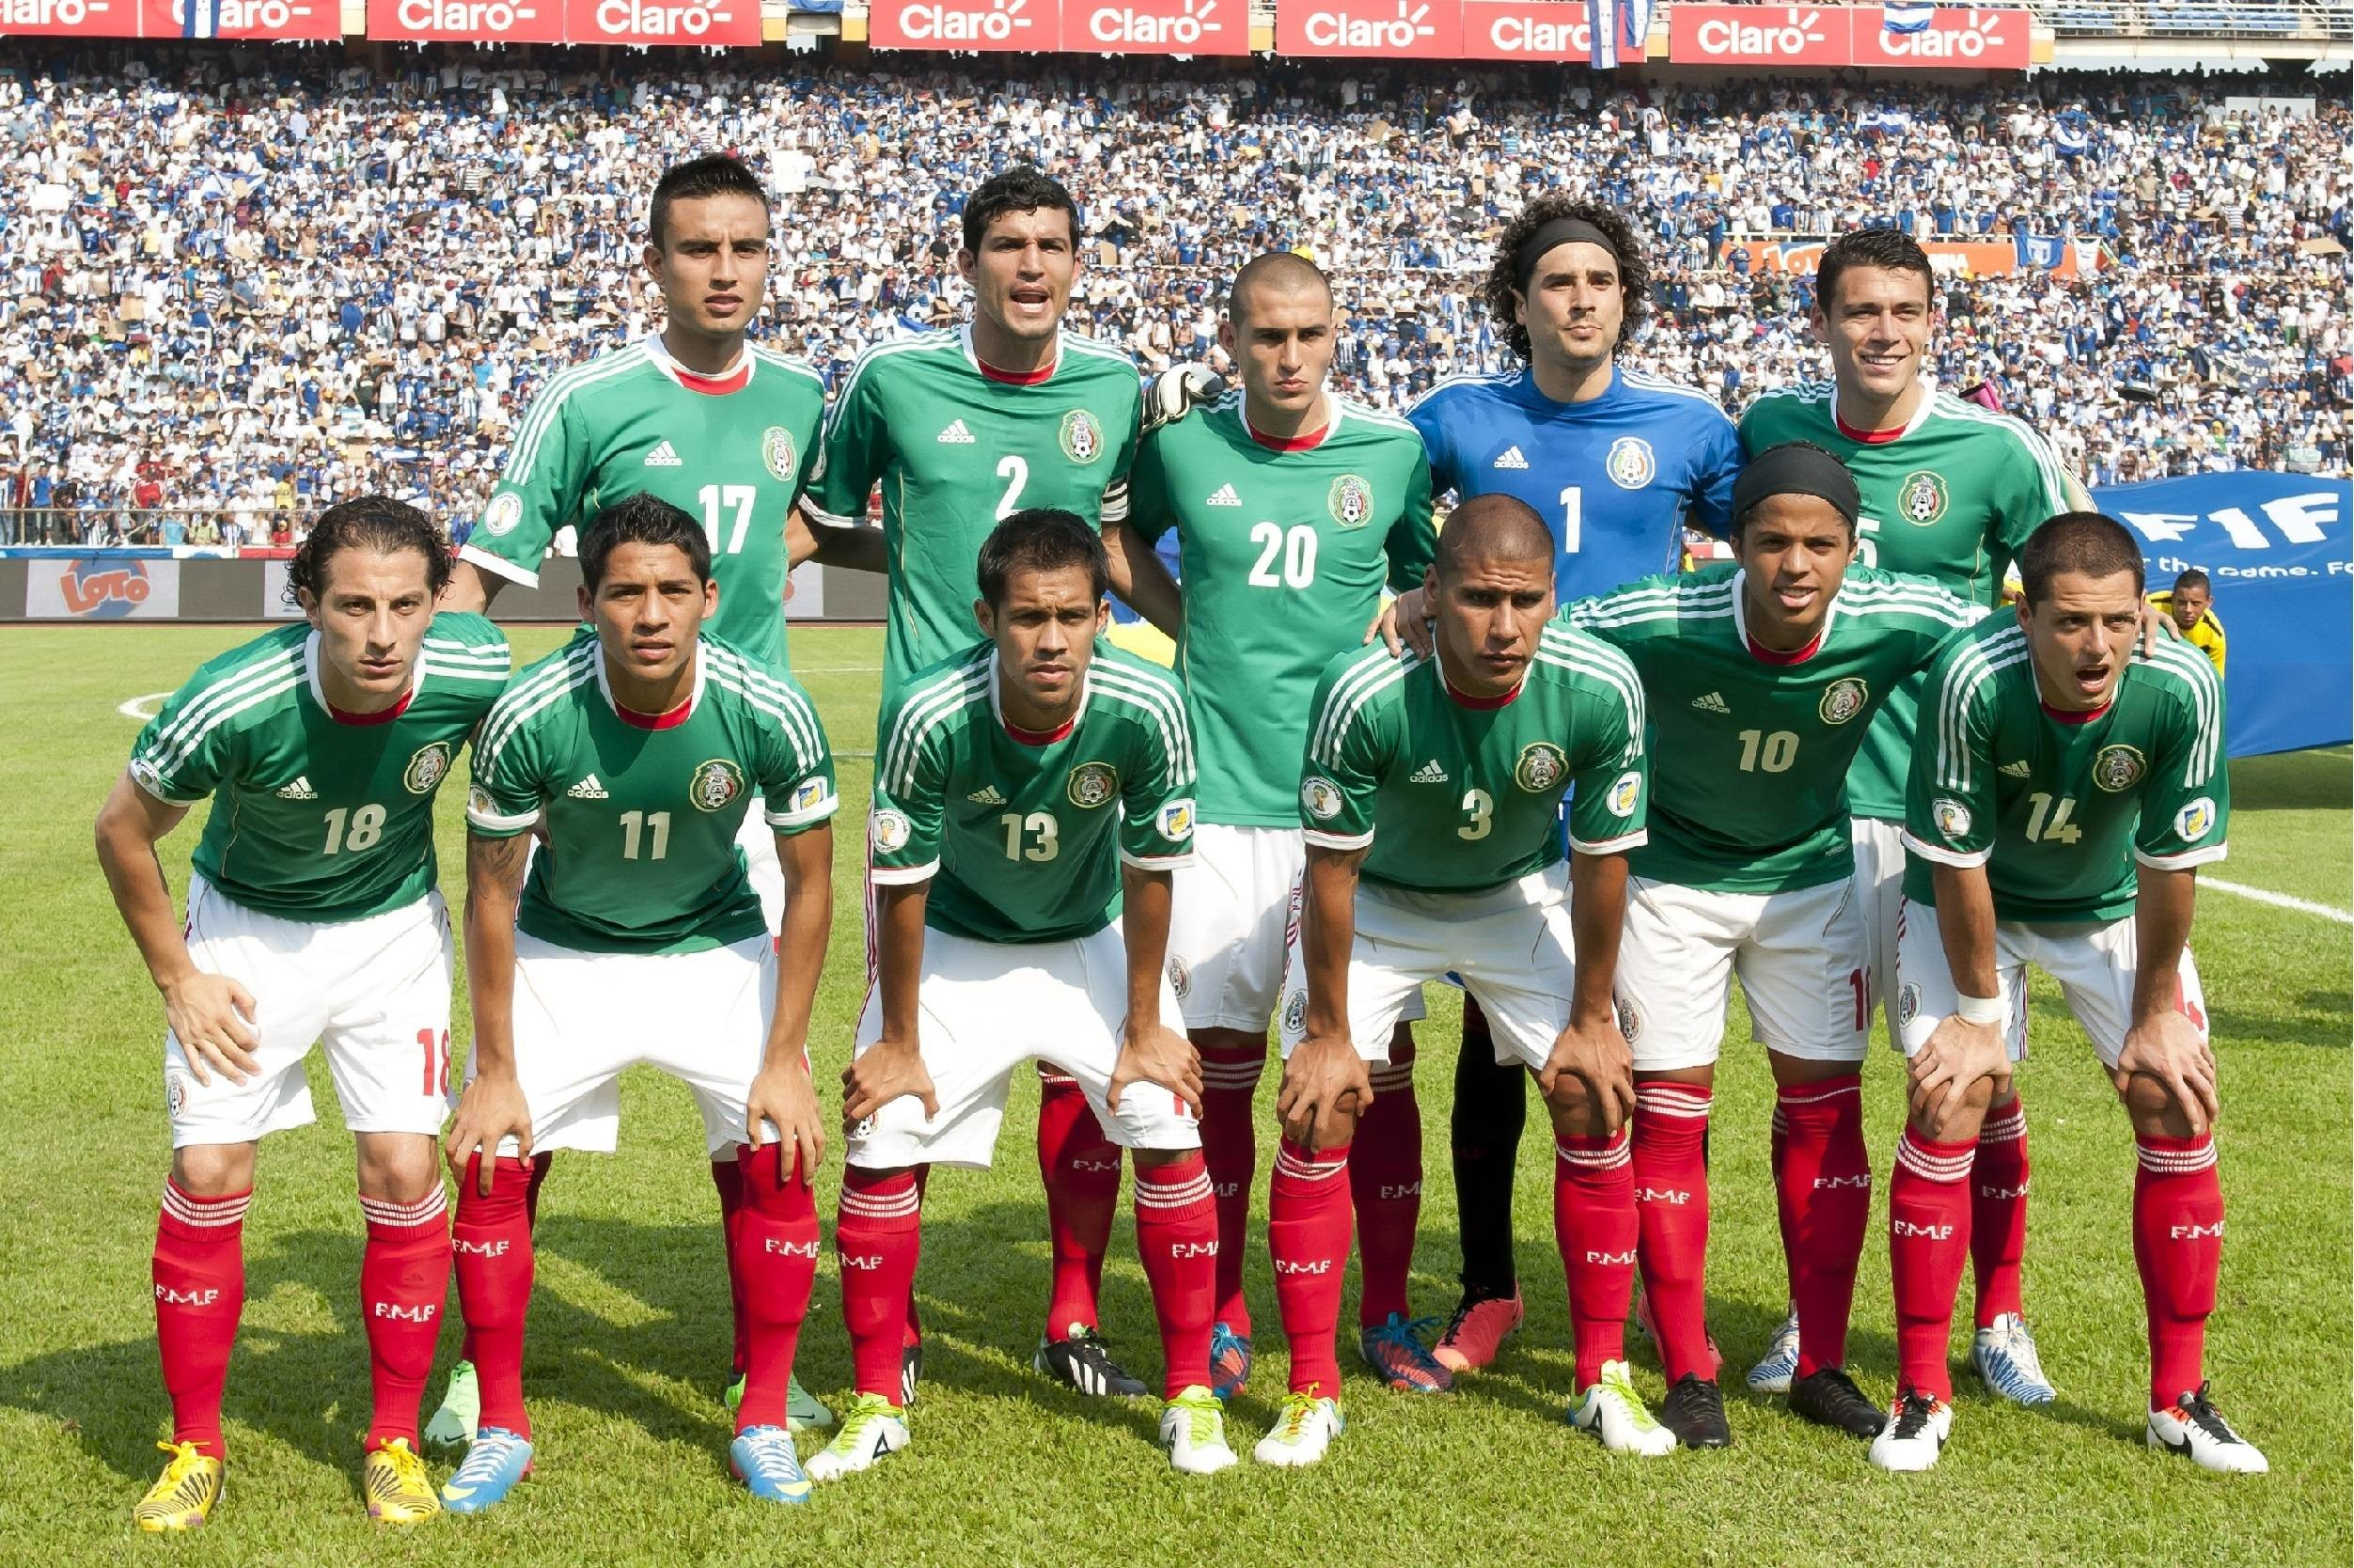 2504x1668 - Mexican Soccer Team 2018 1